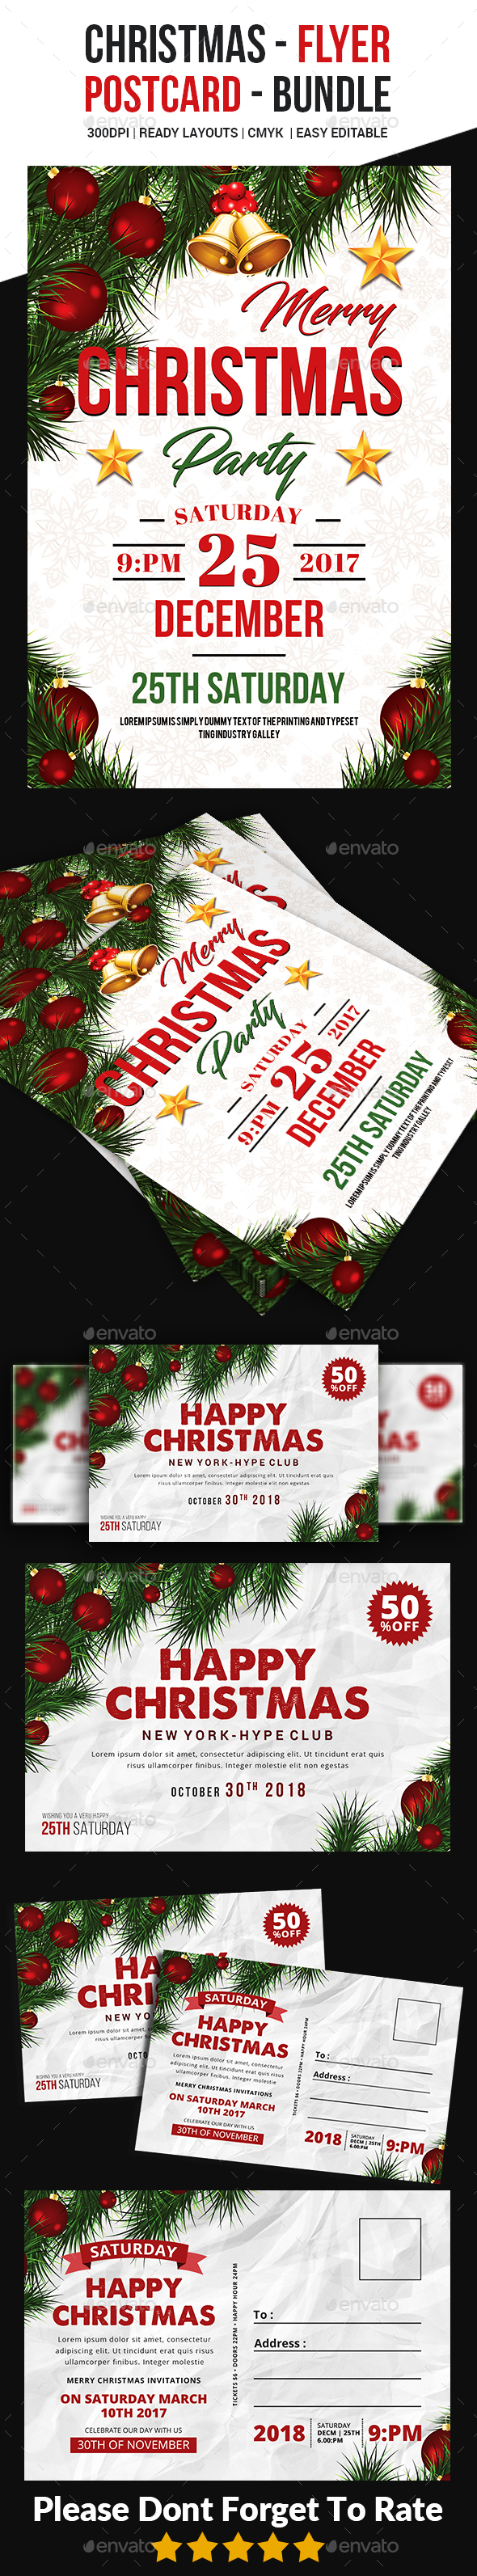 GraphicRiver Christmas Flyer PostCard Bundle 20985142